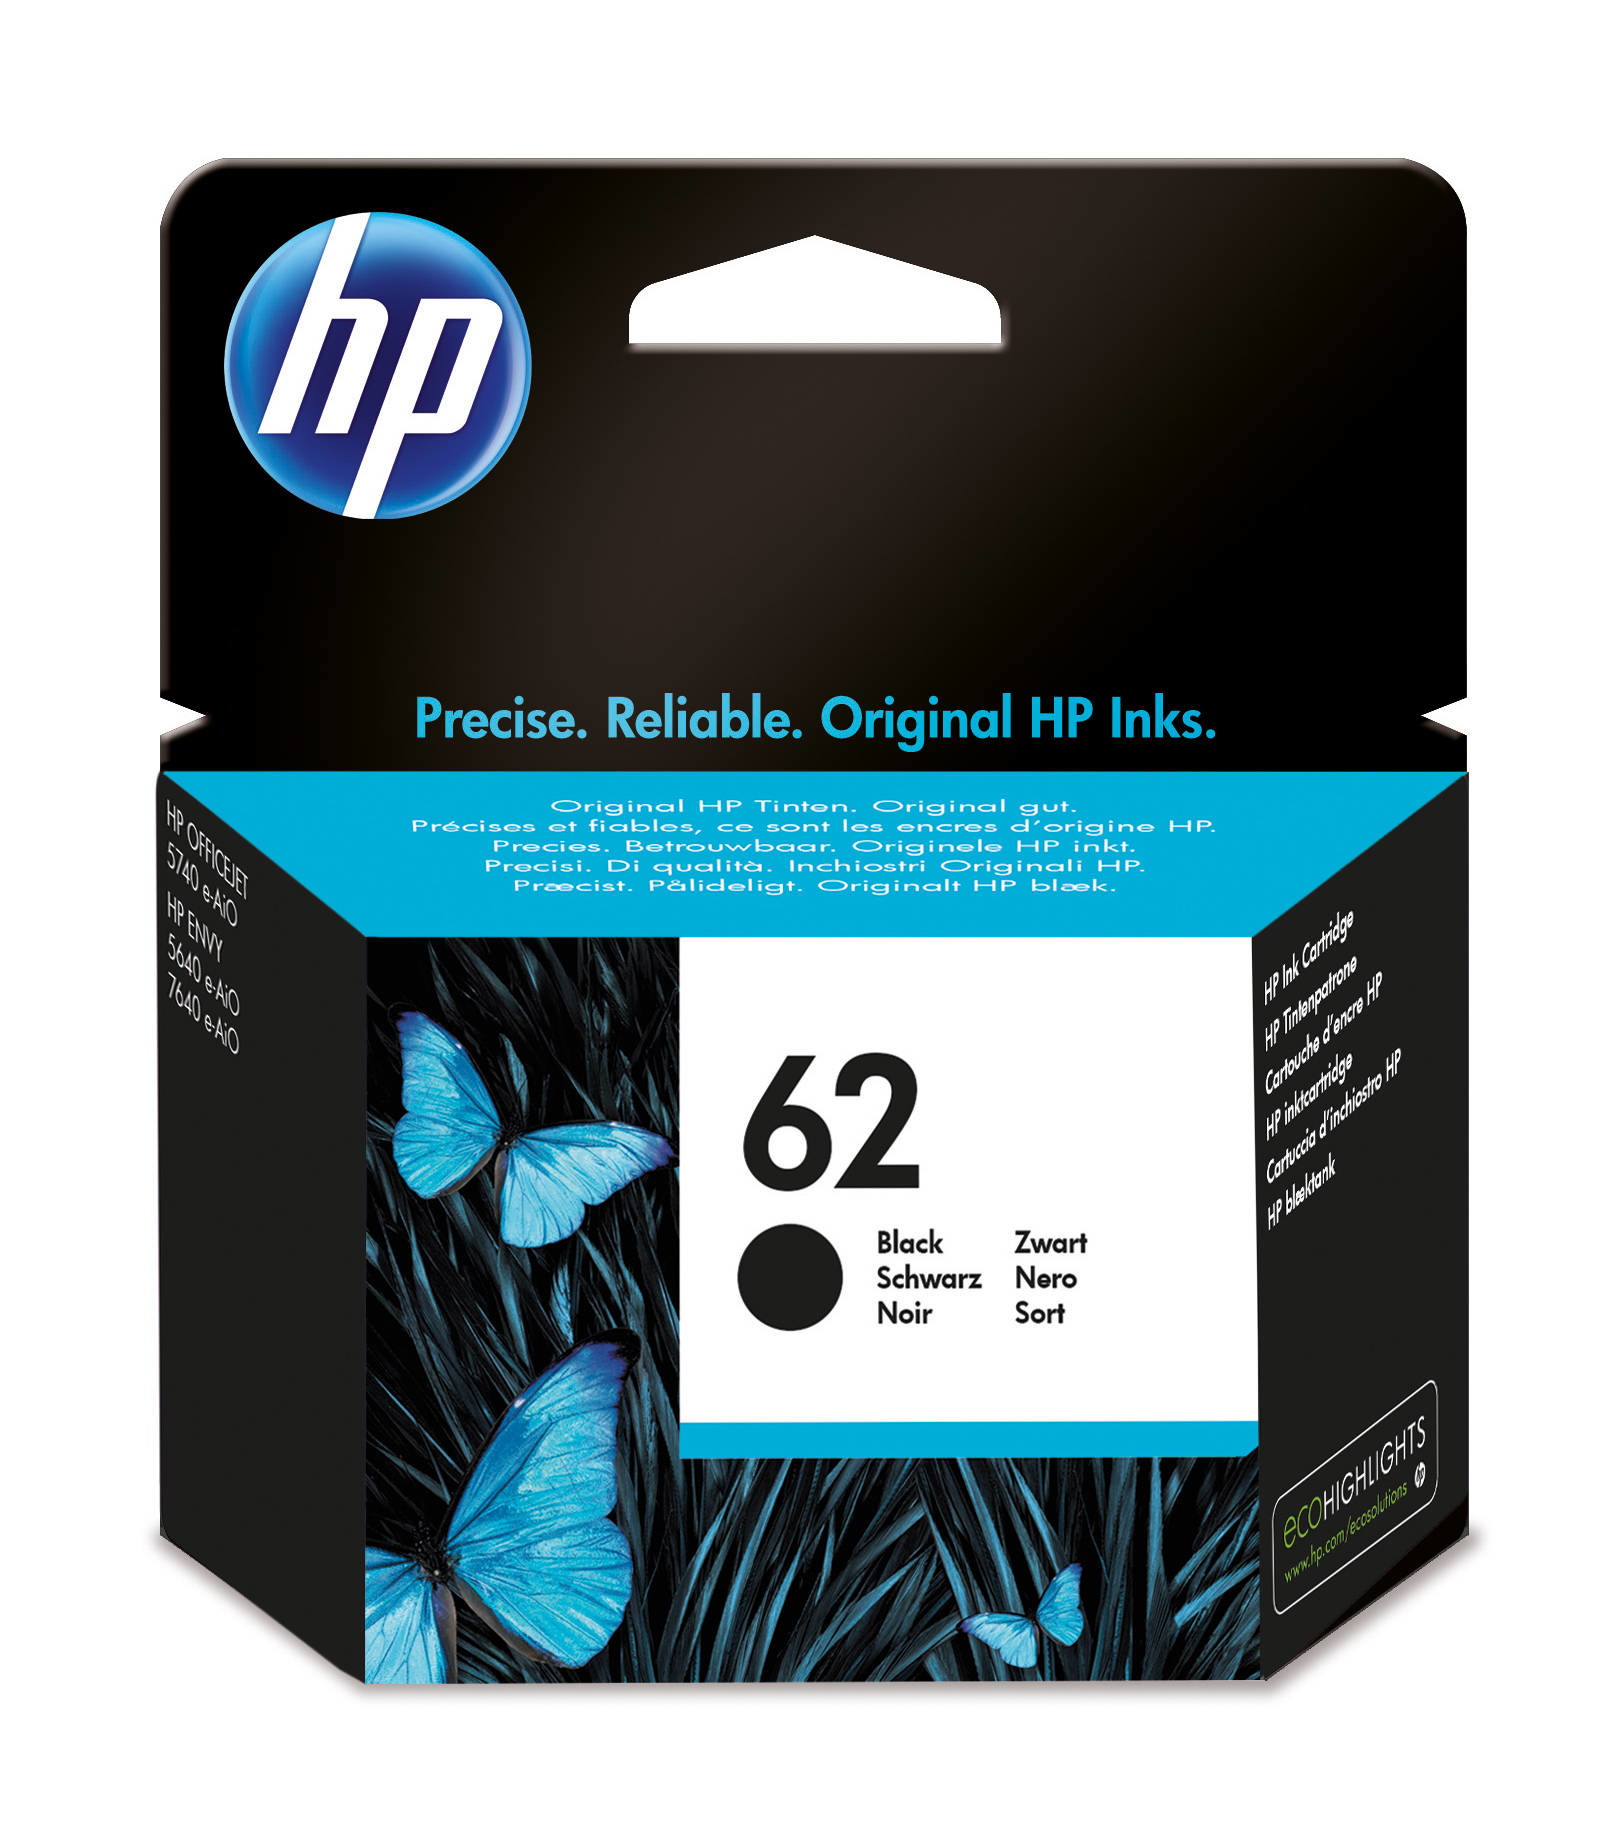 HP 62 - C2P04AE - 1 X Black - Ink Cartridge - For Envy 5644, 5646, 5660, 7640, Officejet 5742, 8040 With Neat C2P04AE#UUS - C2000